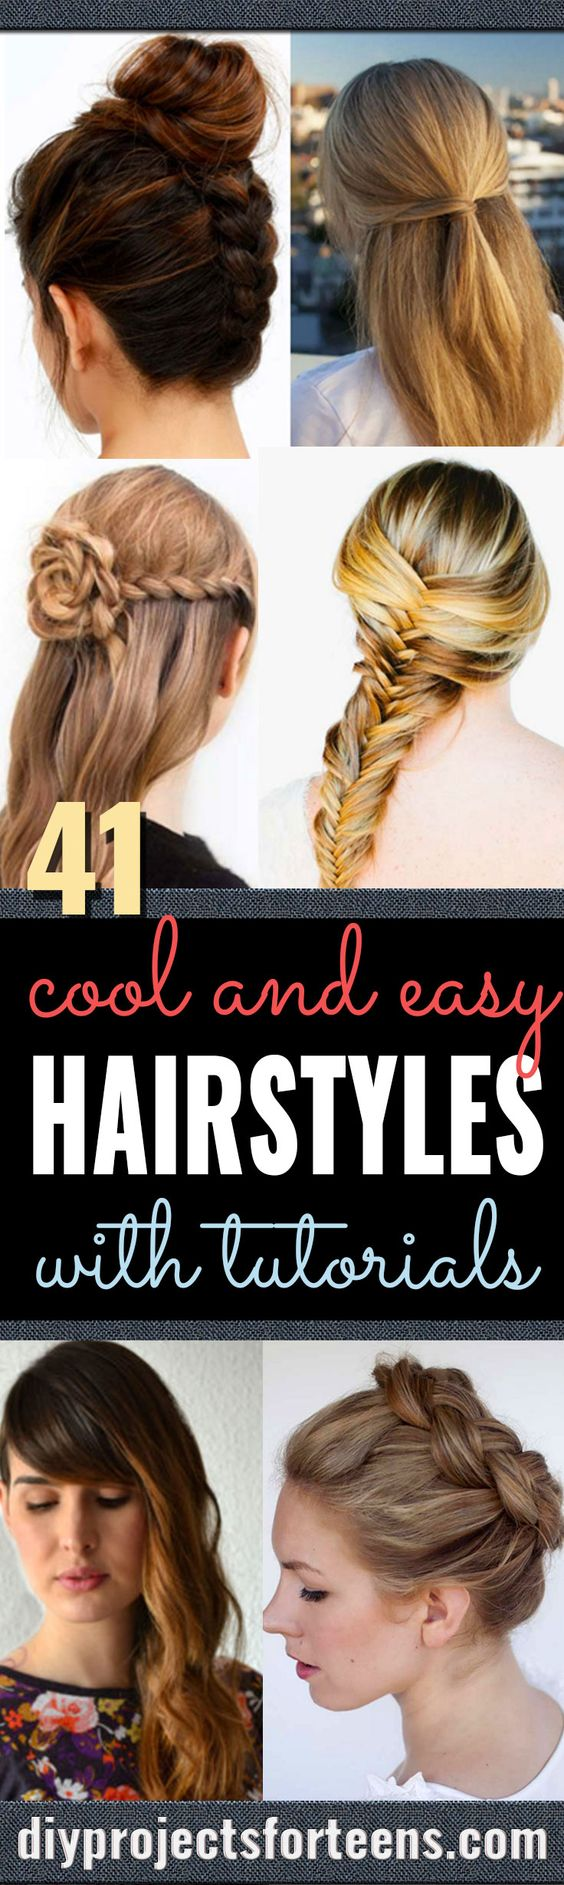 home hair styling ideas 41 diy cool easy hairstyles that real can actually 7098